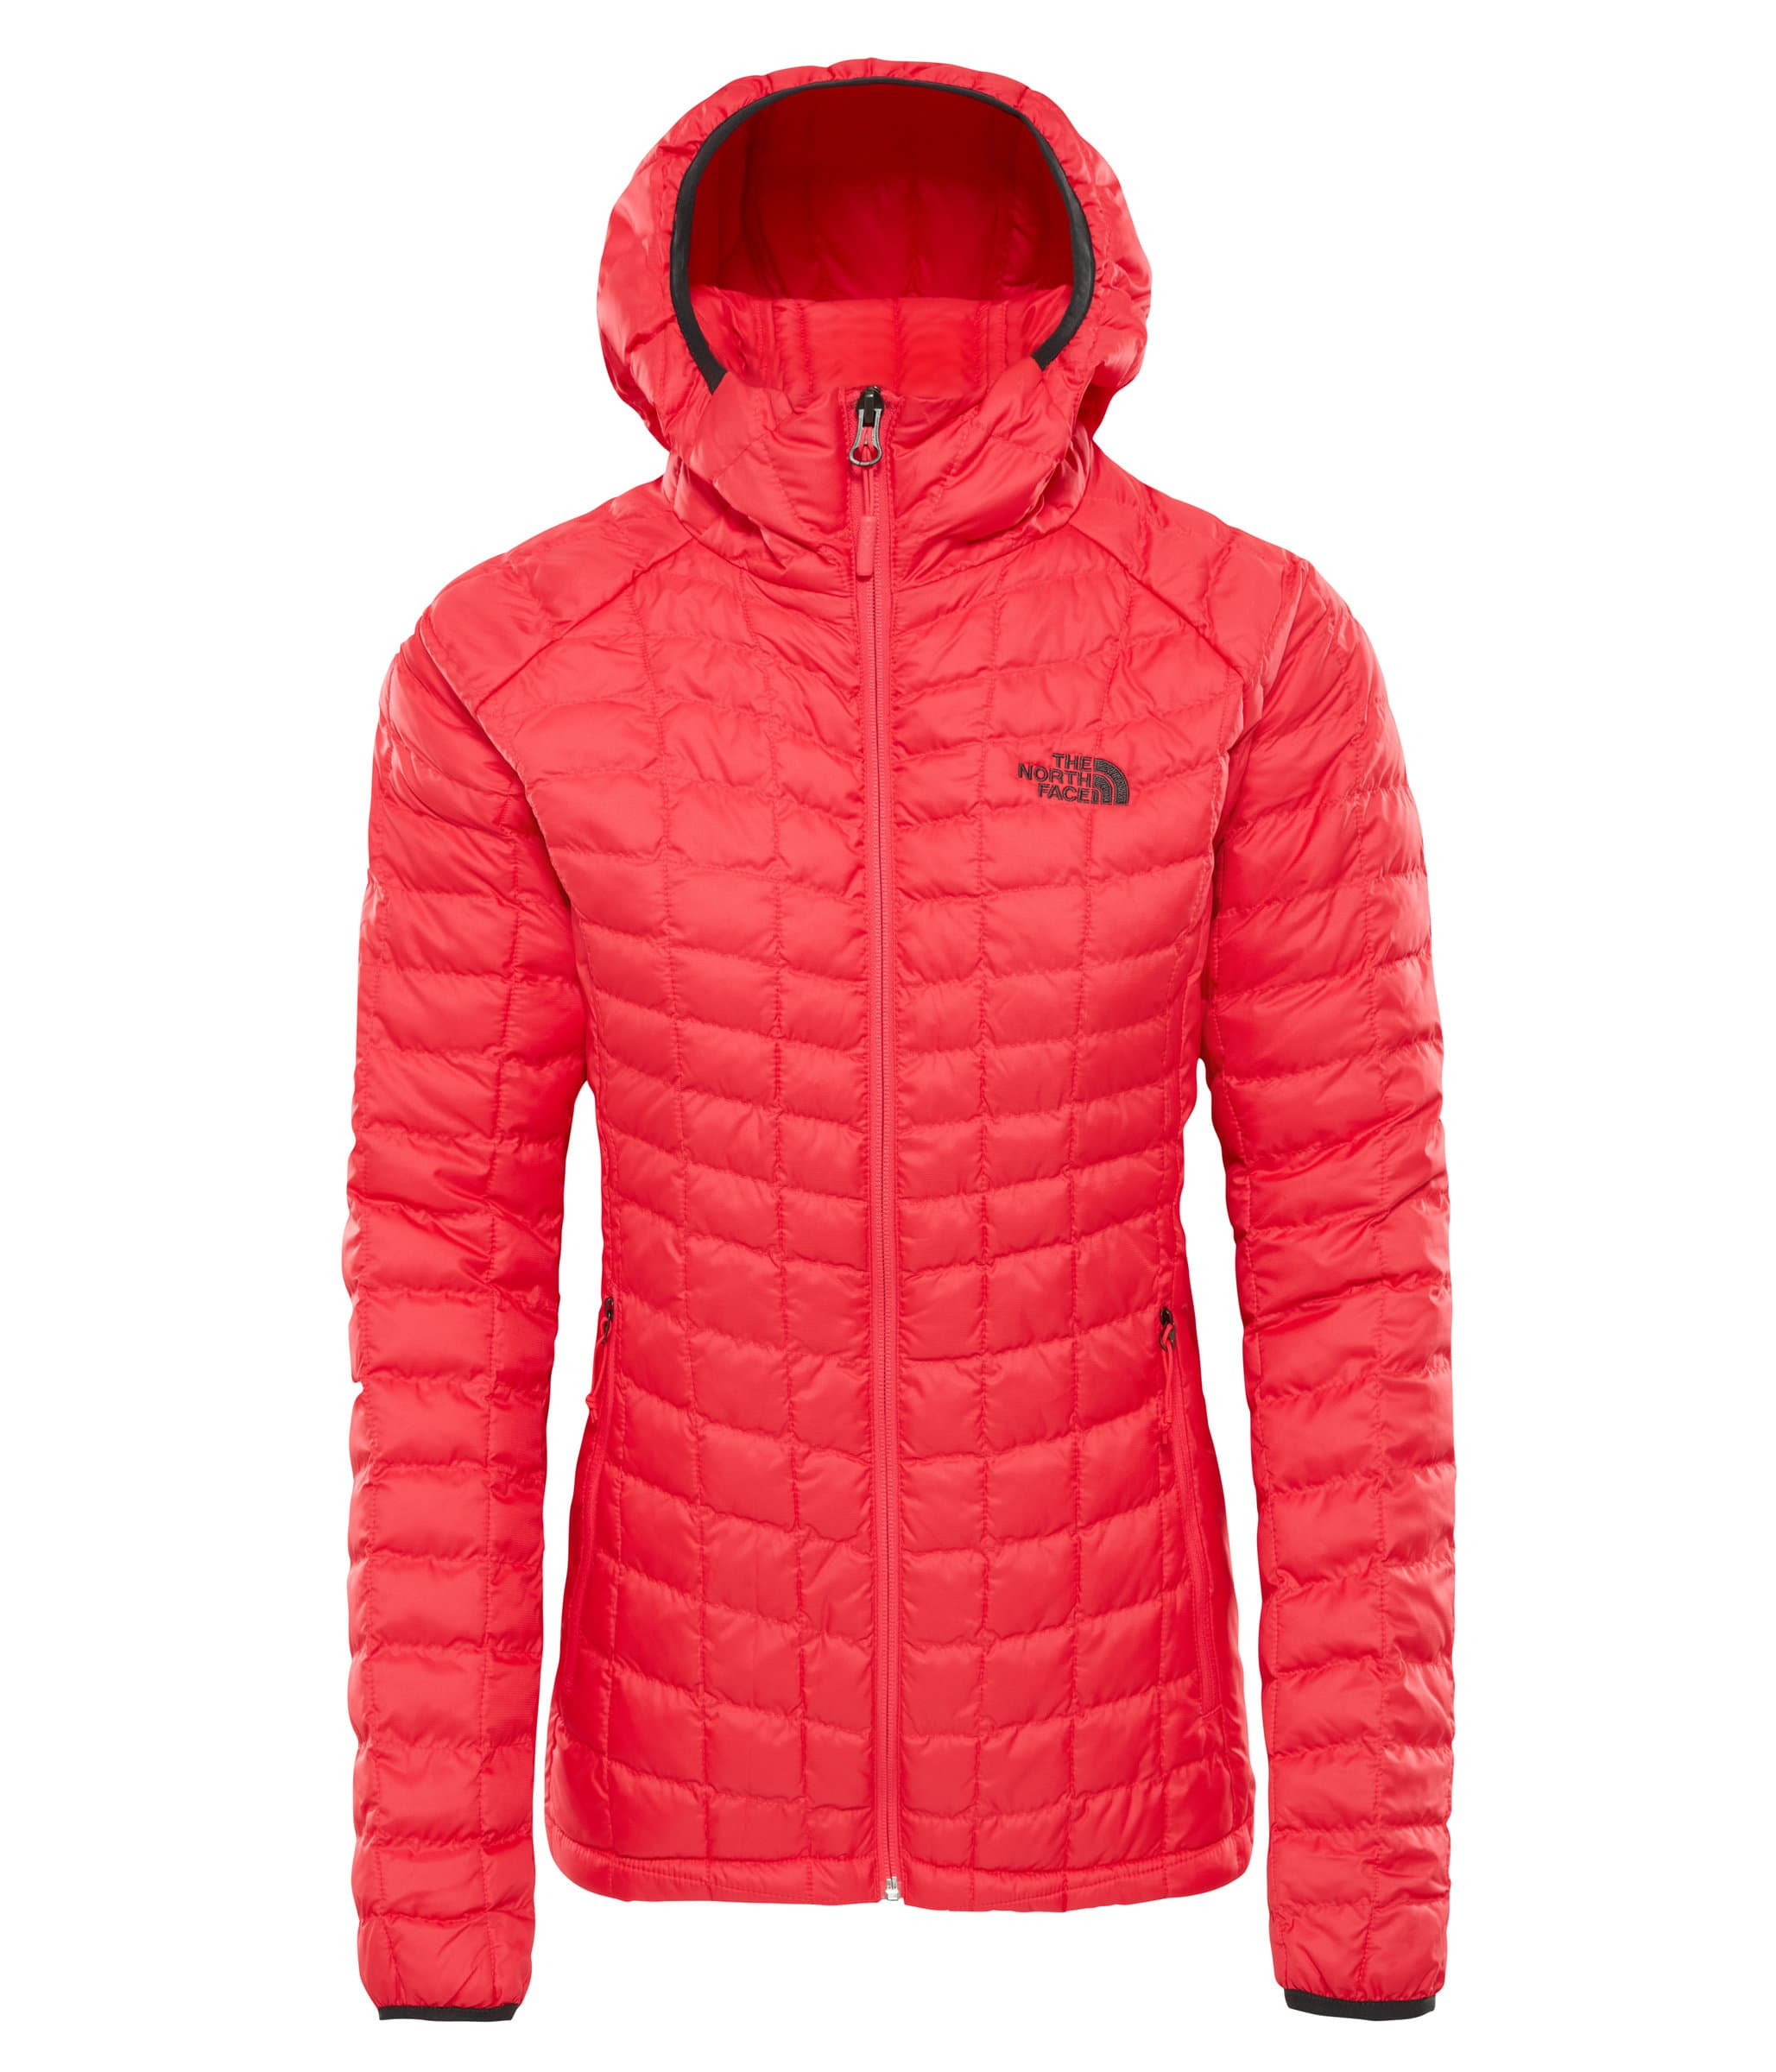 baed3877c5 The North Face Thermoball Sport Hoodie Veste isolante pour femme ...